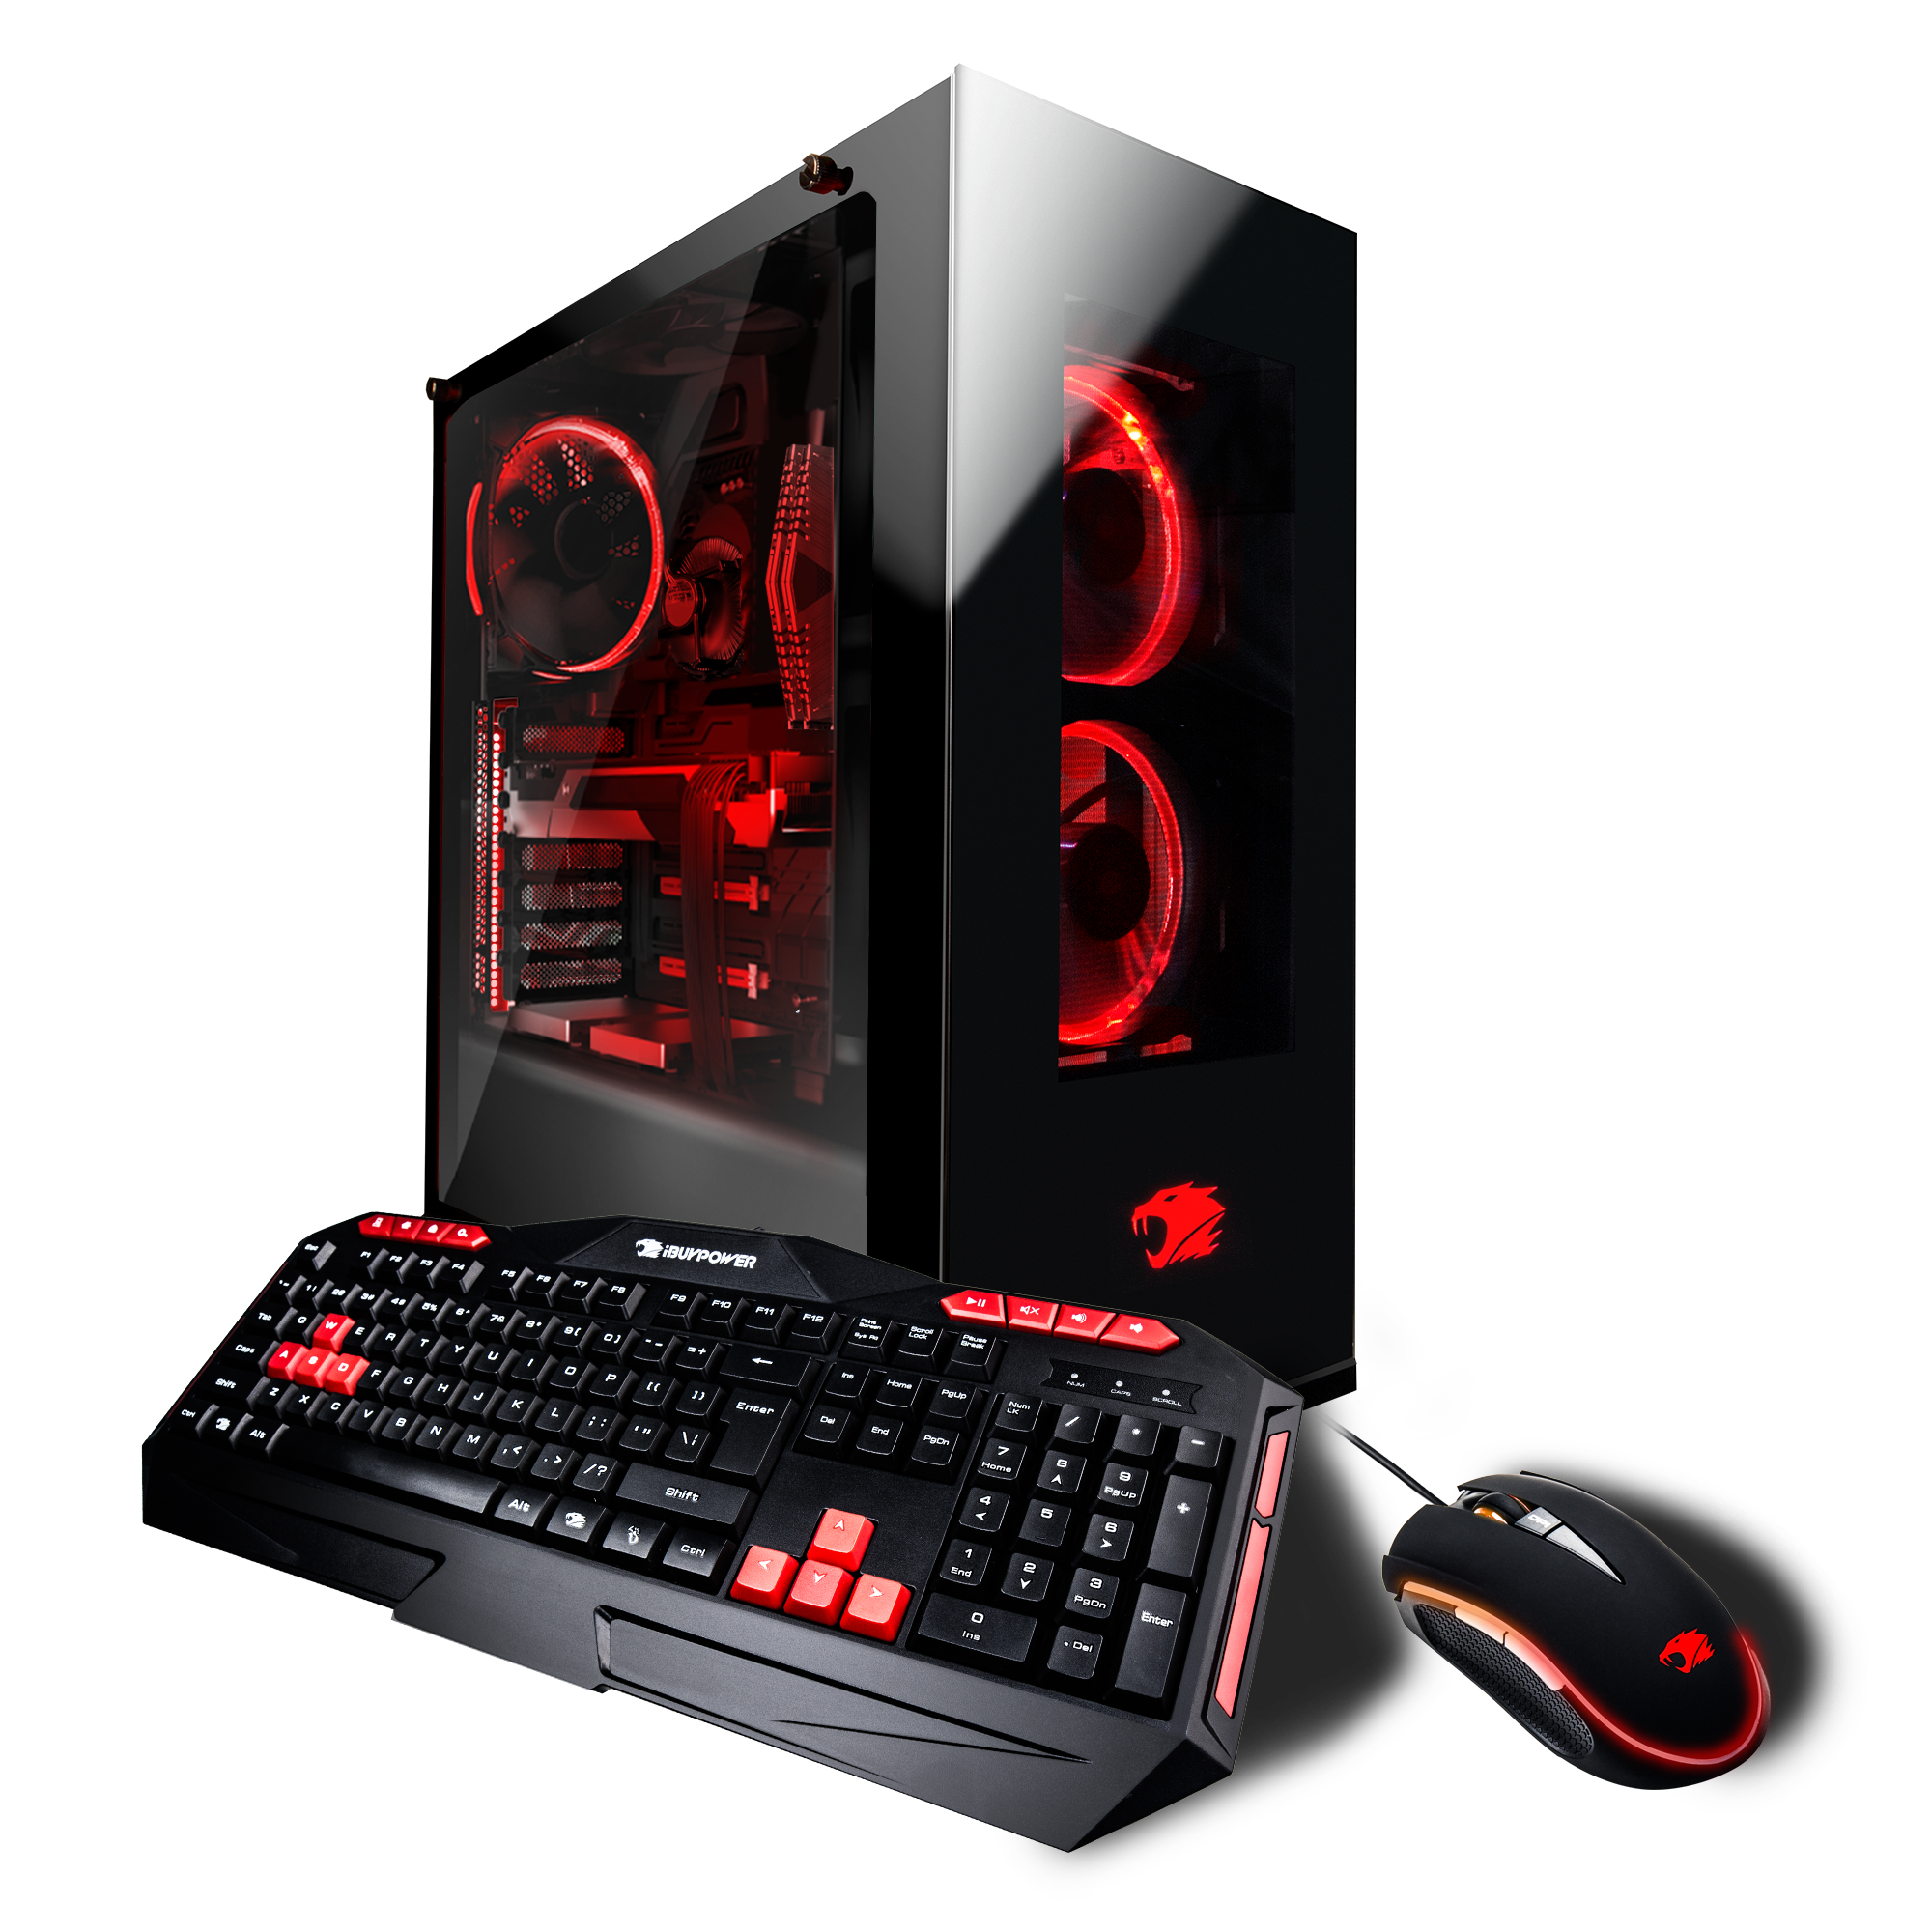 iBUYPOWER WA043i - Gaming Desktop PC - Intel i7 8700k - 16GB DDR4 Memory - NVIDIA GeForce RTX 2080 8GB - 1TB Hard Drive - 480GB SSD - (No Monitor Included)